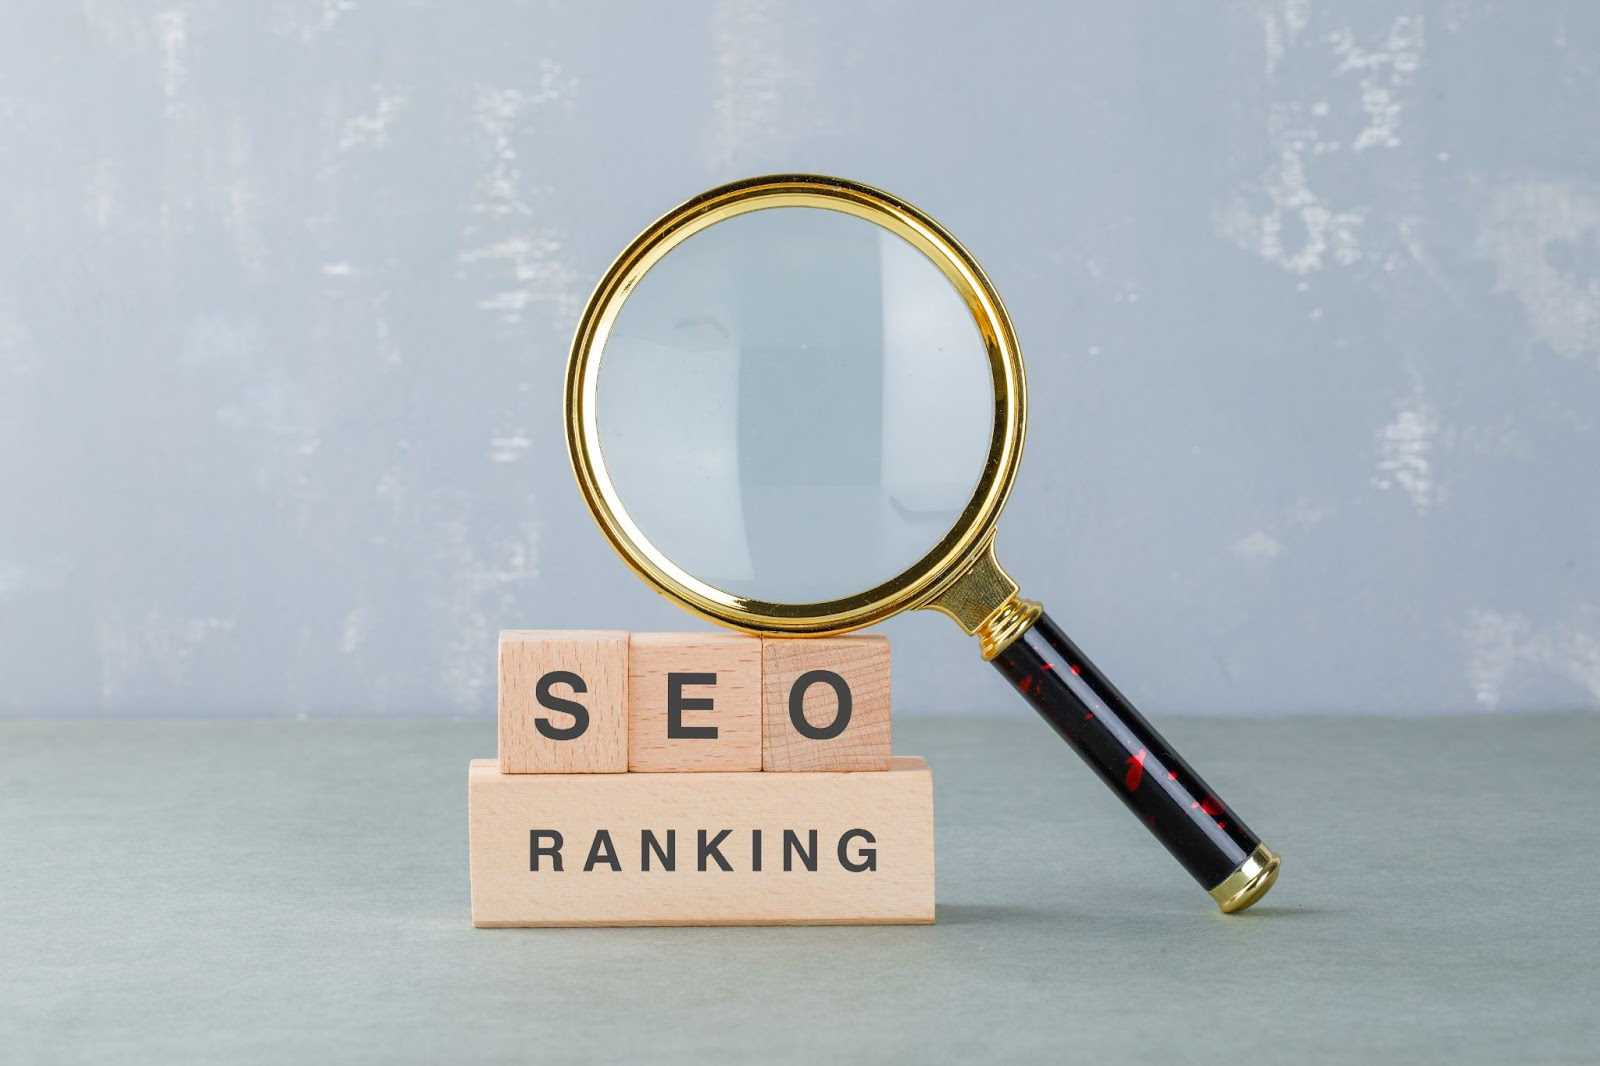 seo ranking is important to grow